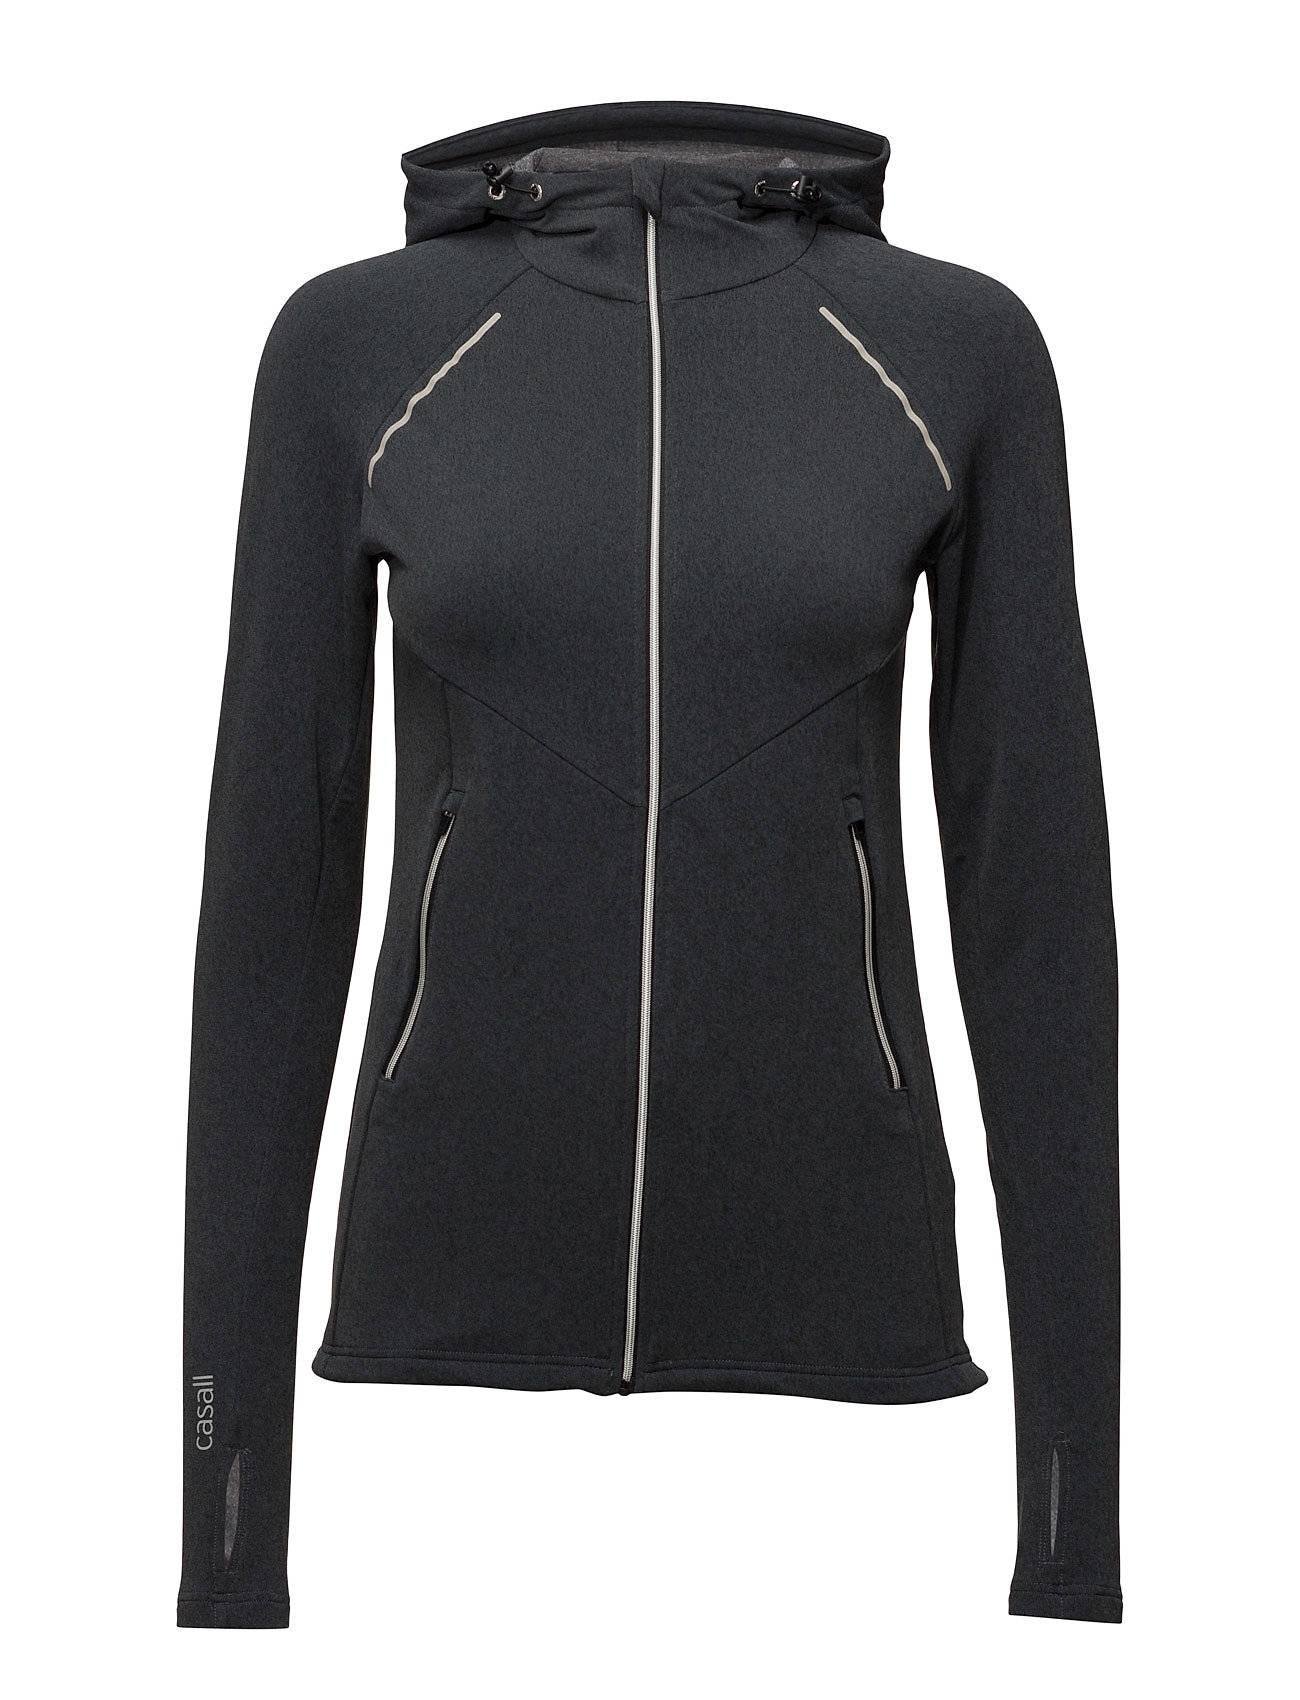 Casall Performance Warm Jacket